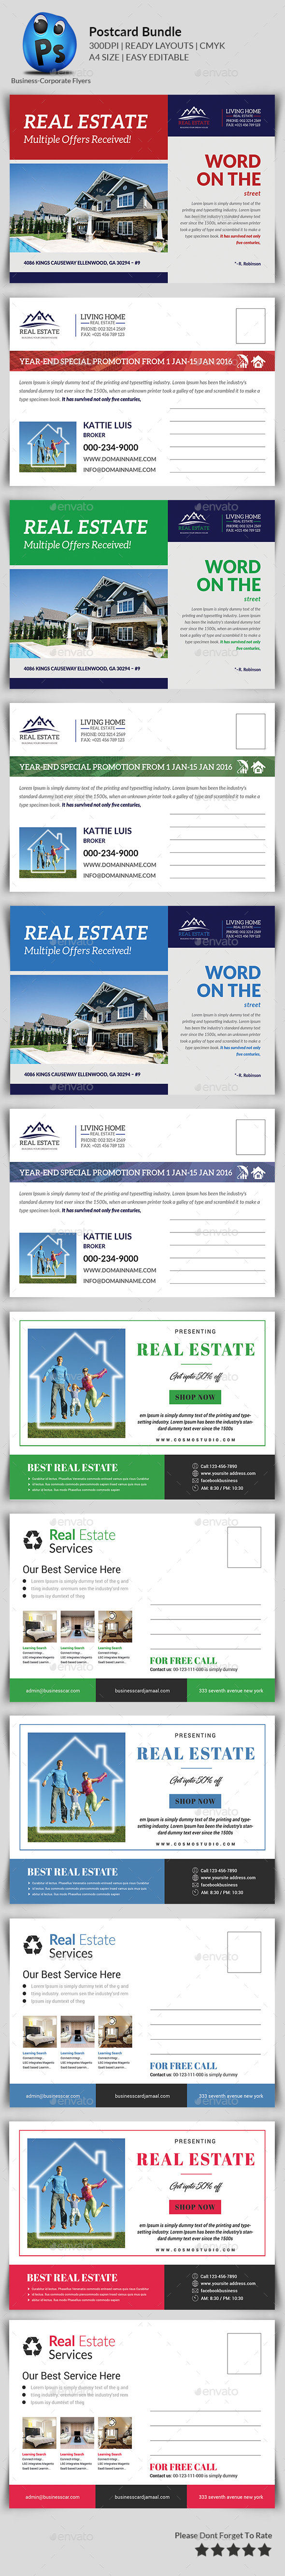 Real Estate Postcards Bundle - Cards & Invites Print Templates